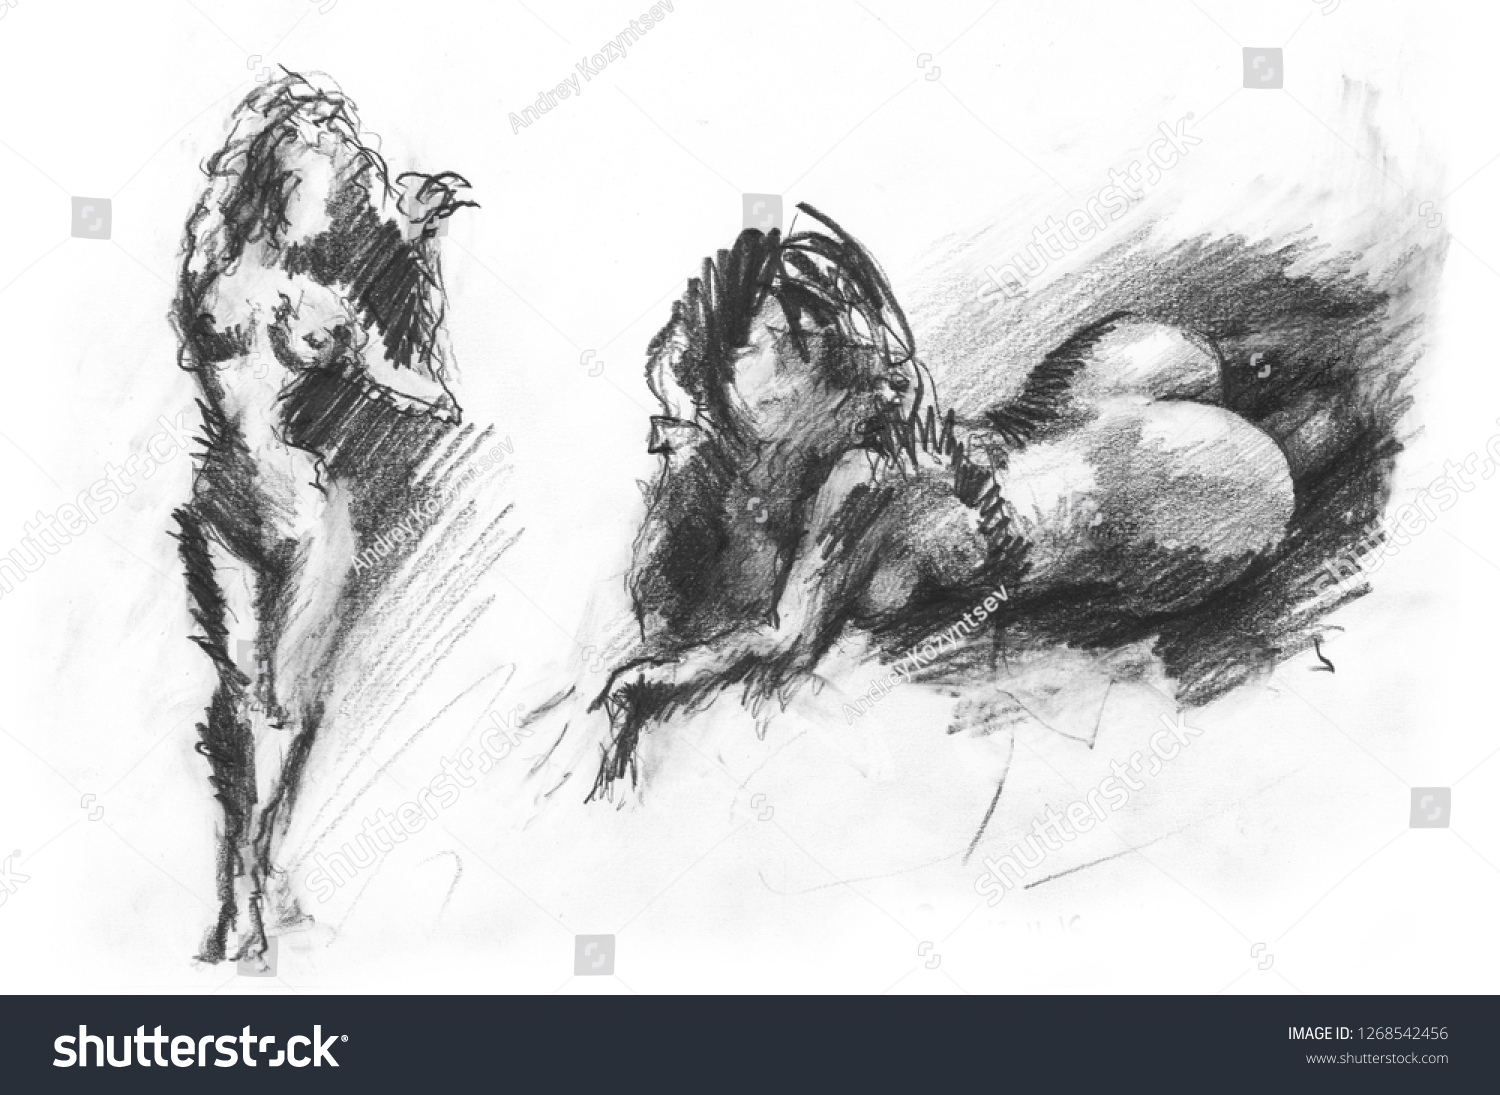 Lying naked woman pencil sketch stock illustration 1268542456